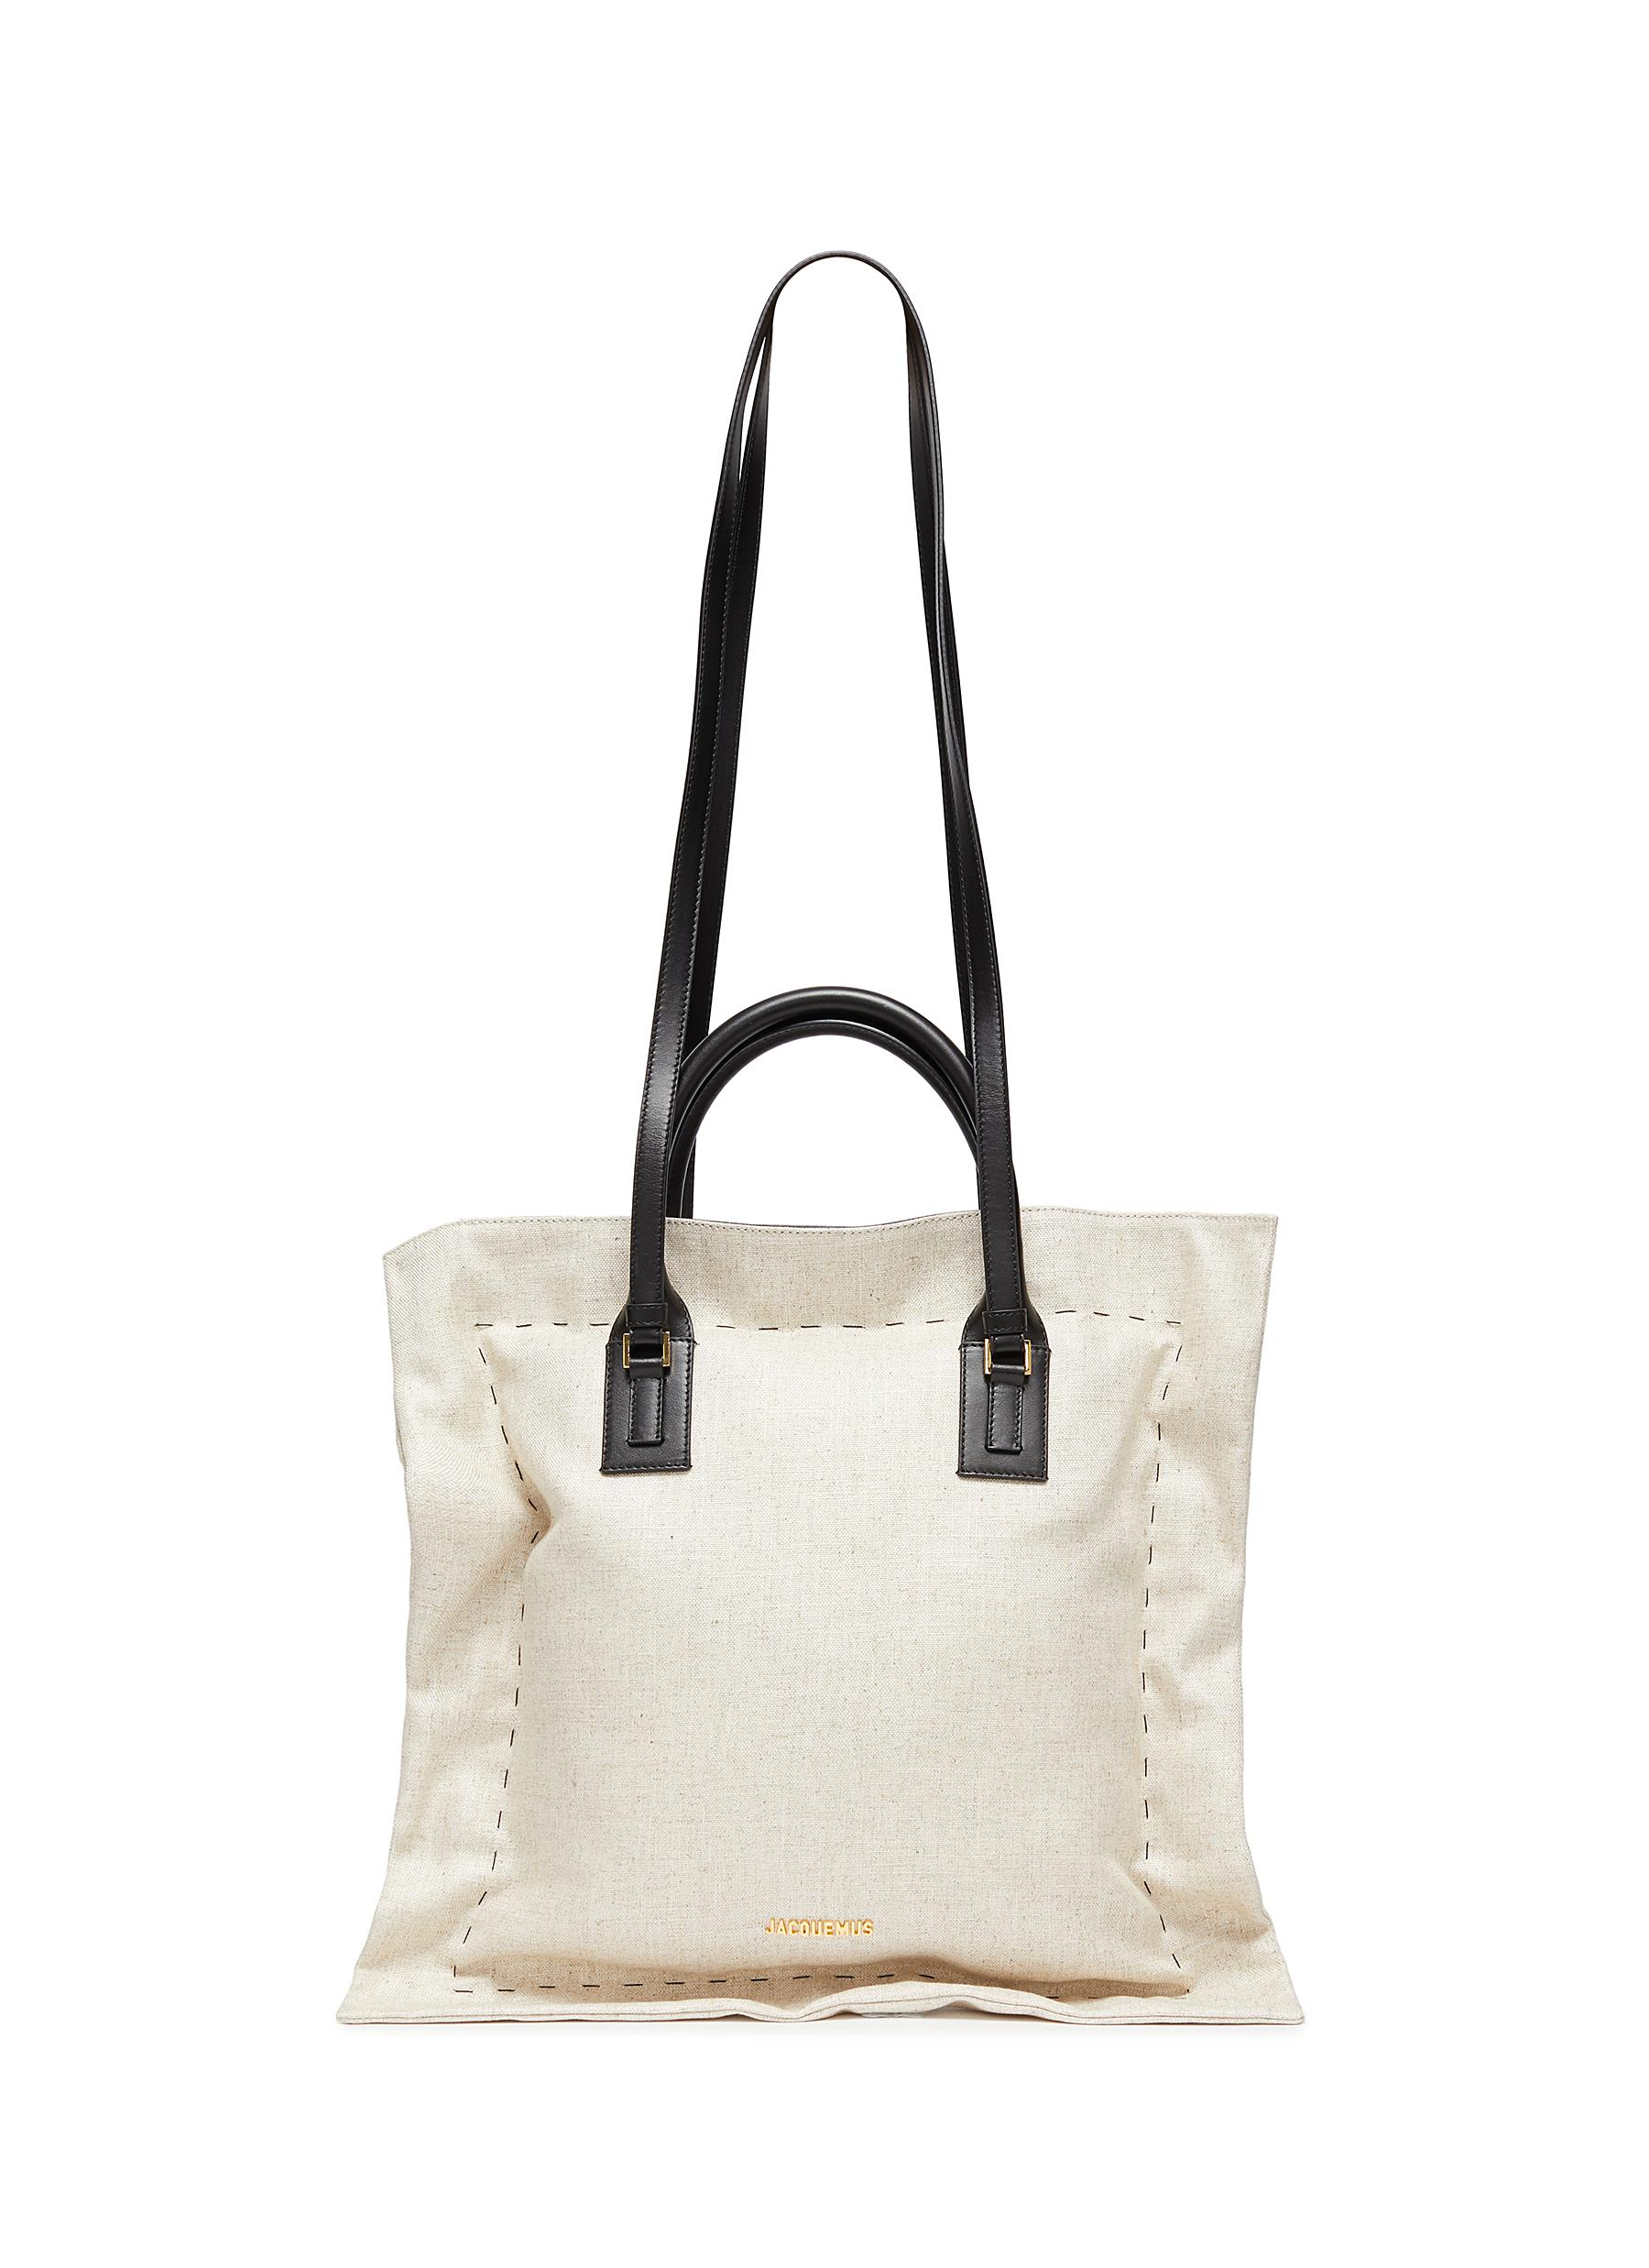 Jacquemus 'LE COUSSIN' LEATHER STRAP PUFF COTTON TOTE